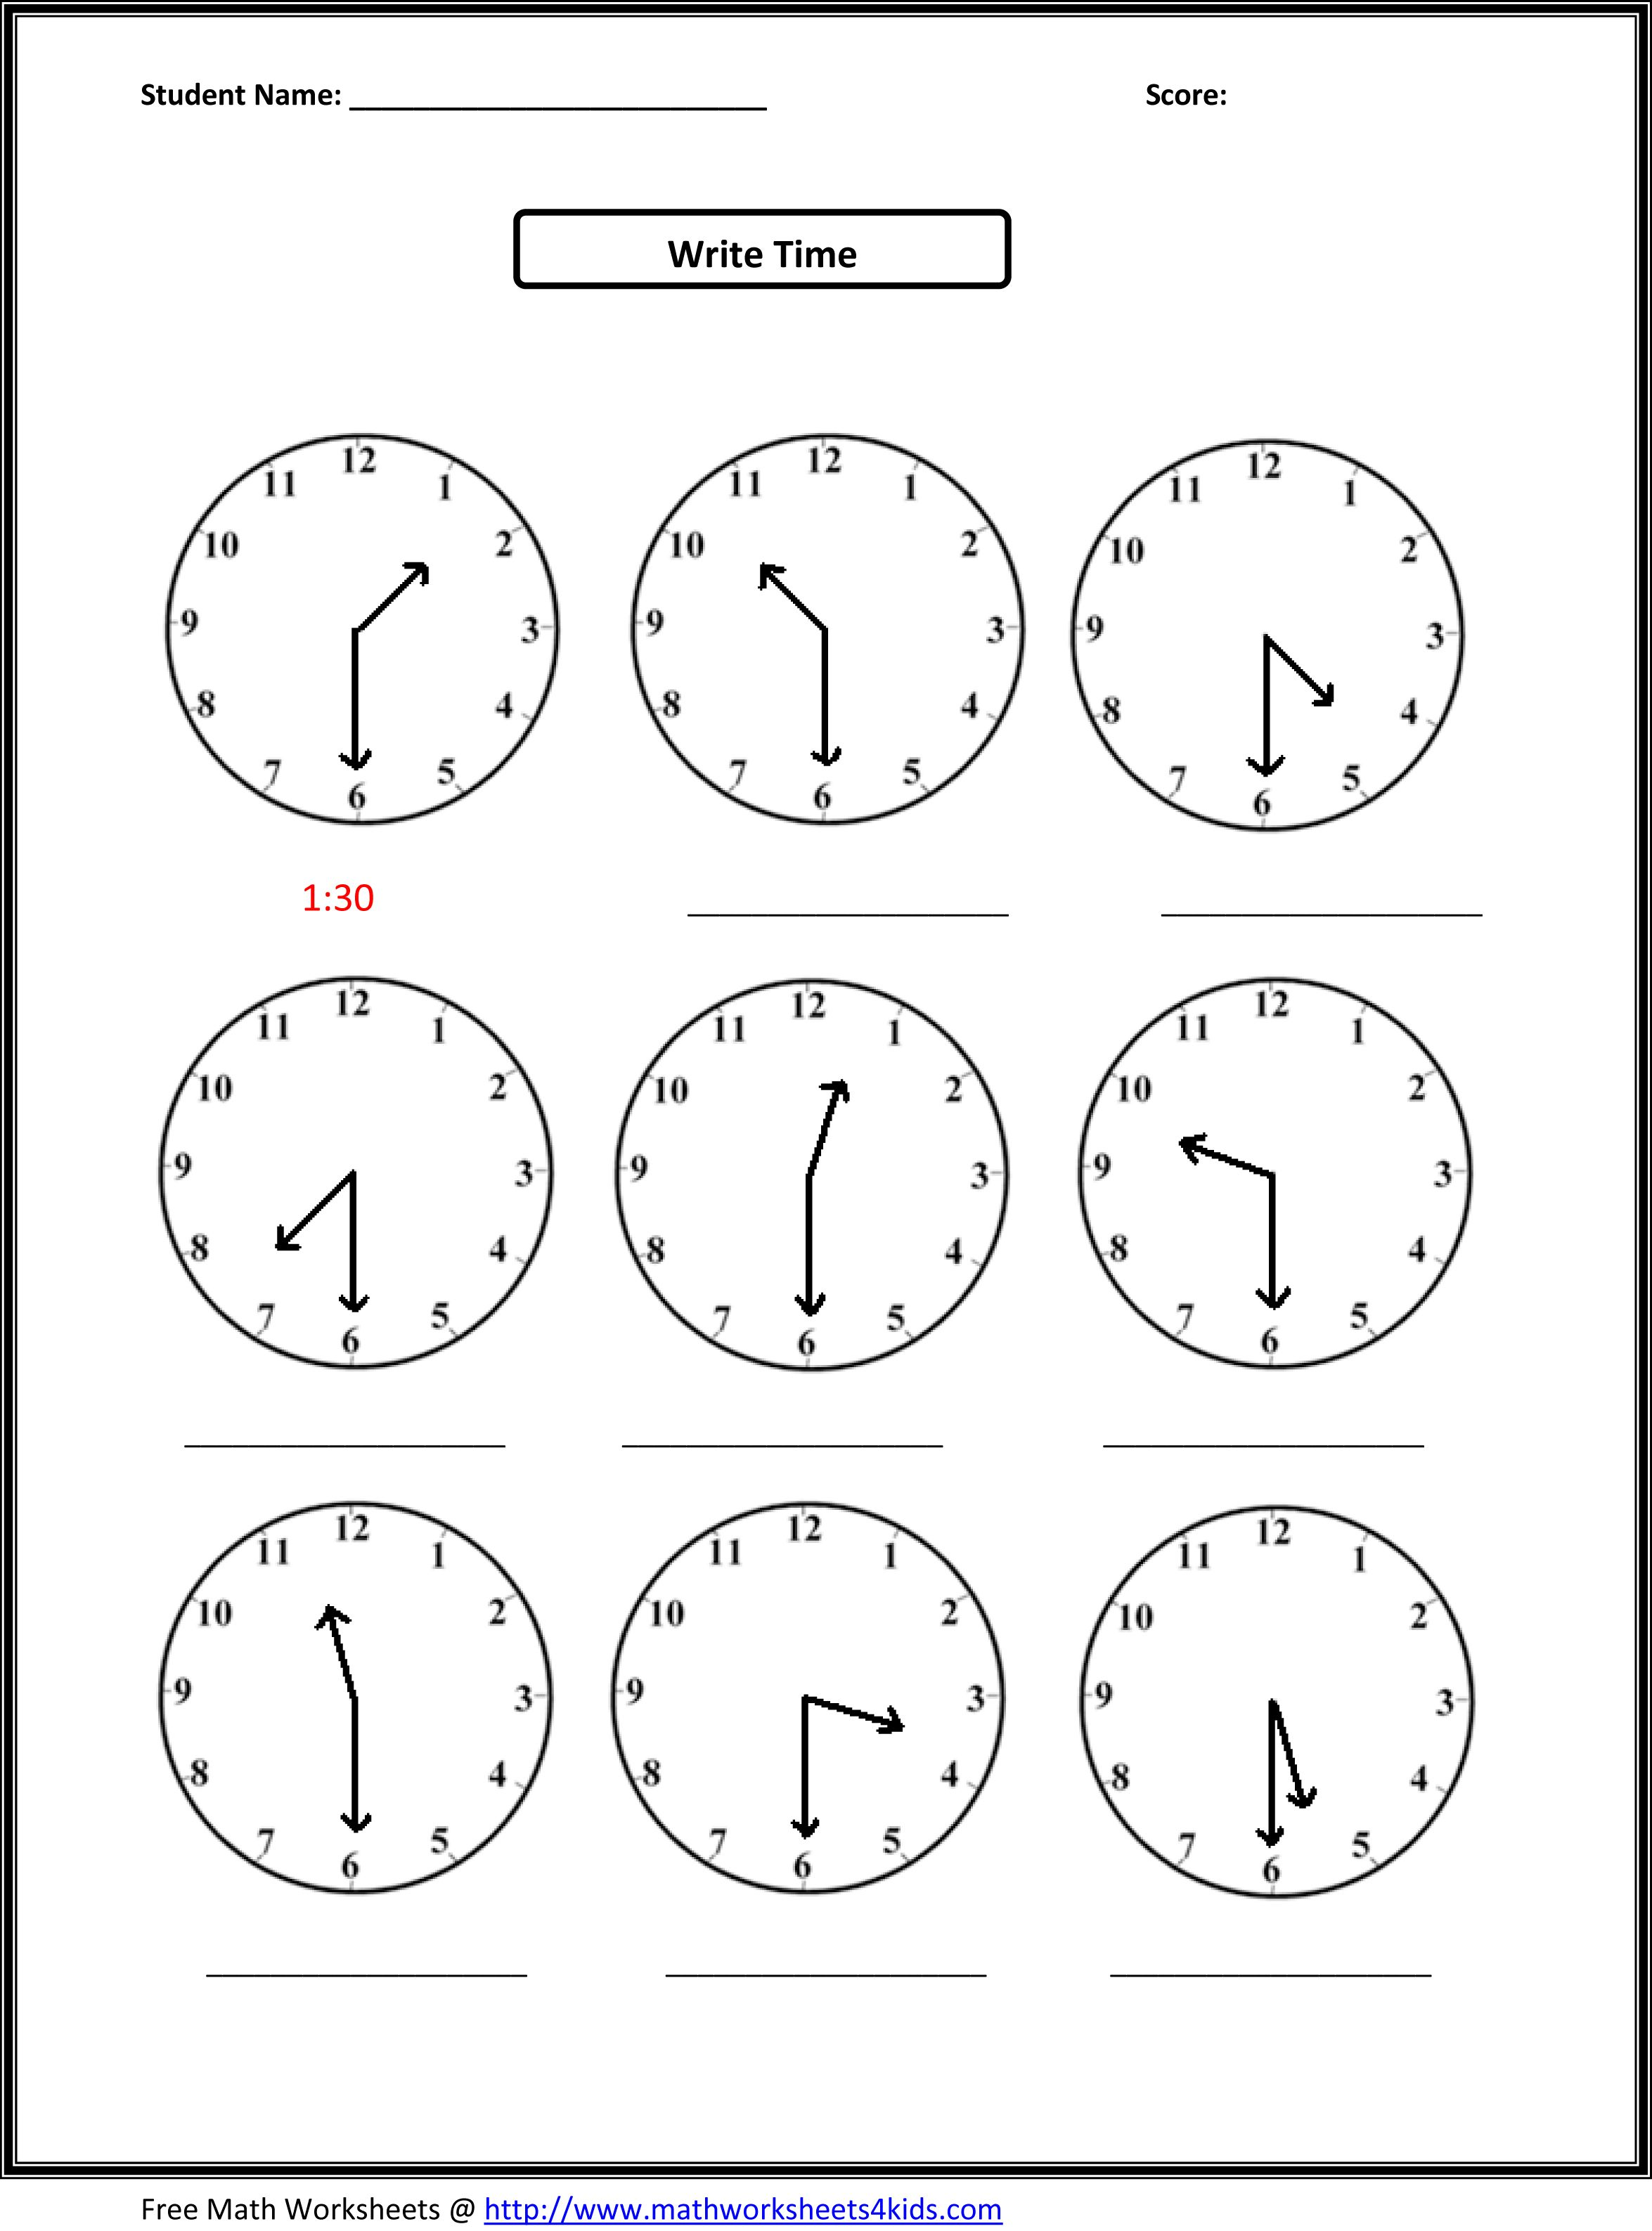 Weirdmailus  Sweet Worksheet On Time For Grade   Reocurent With Lovable Free Printable Telling Time Worksheets Nd Grade  Reocurent With Delectable Key Stage  Science Worksheets Also Suffix Ful Worksheet In Addition Fraction Worksheets For Grade  Free And Inside A Mosque Worksheet As Well As Symmetry Worksheets For Kids Additionally Preschool Worksheets For Free From Reocurentcom With Weirdmailus  Lovable Worksheet On Time For Grade   Reocurent With Delectable Free Printable Telling Time Worksheets Nd Grade  Reocurent And Sweet Key Stage  Science Worksheets Also Suffix Ful Worksheet In Addition Fraction Worksheets For Grade  Free From Reocurentcom